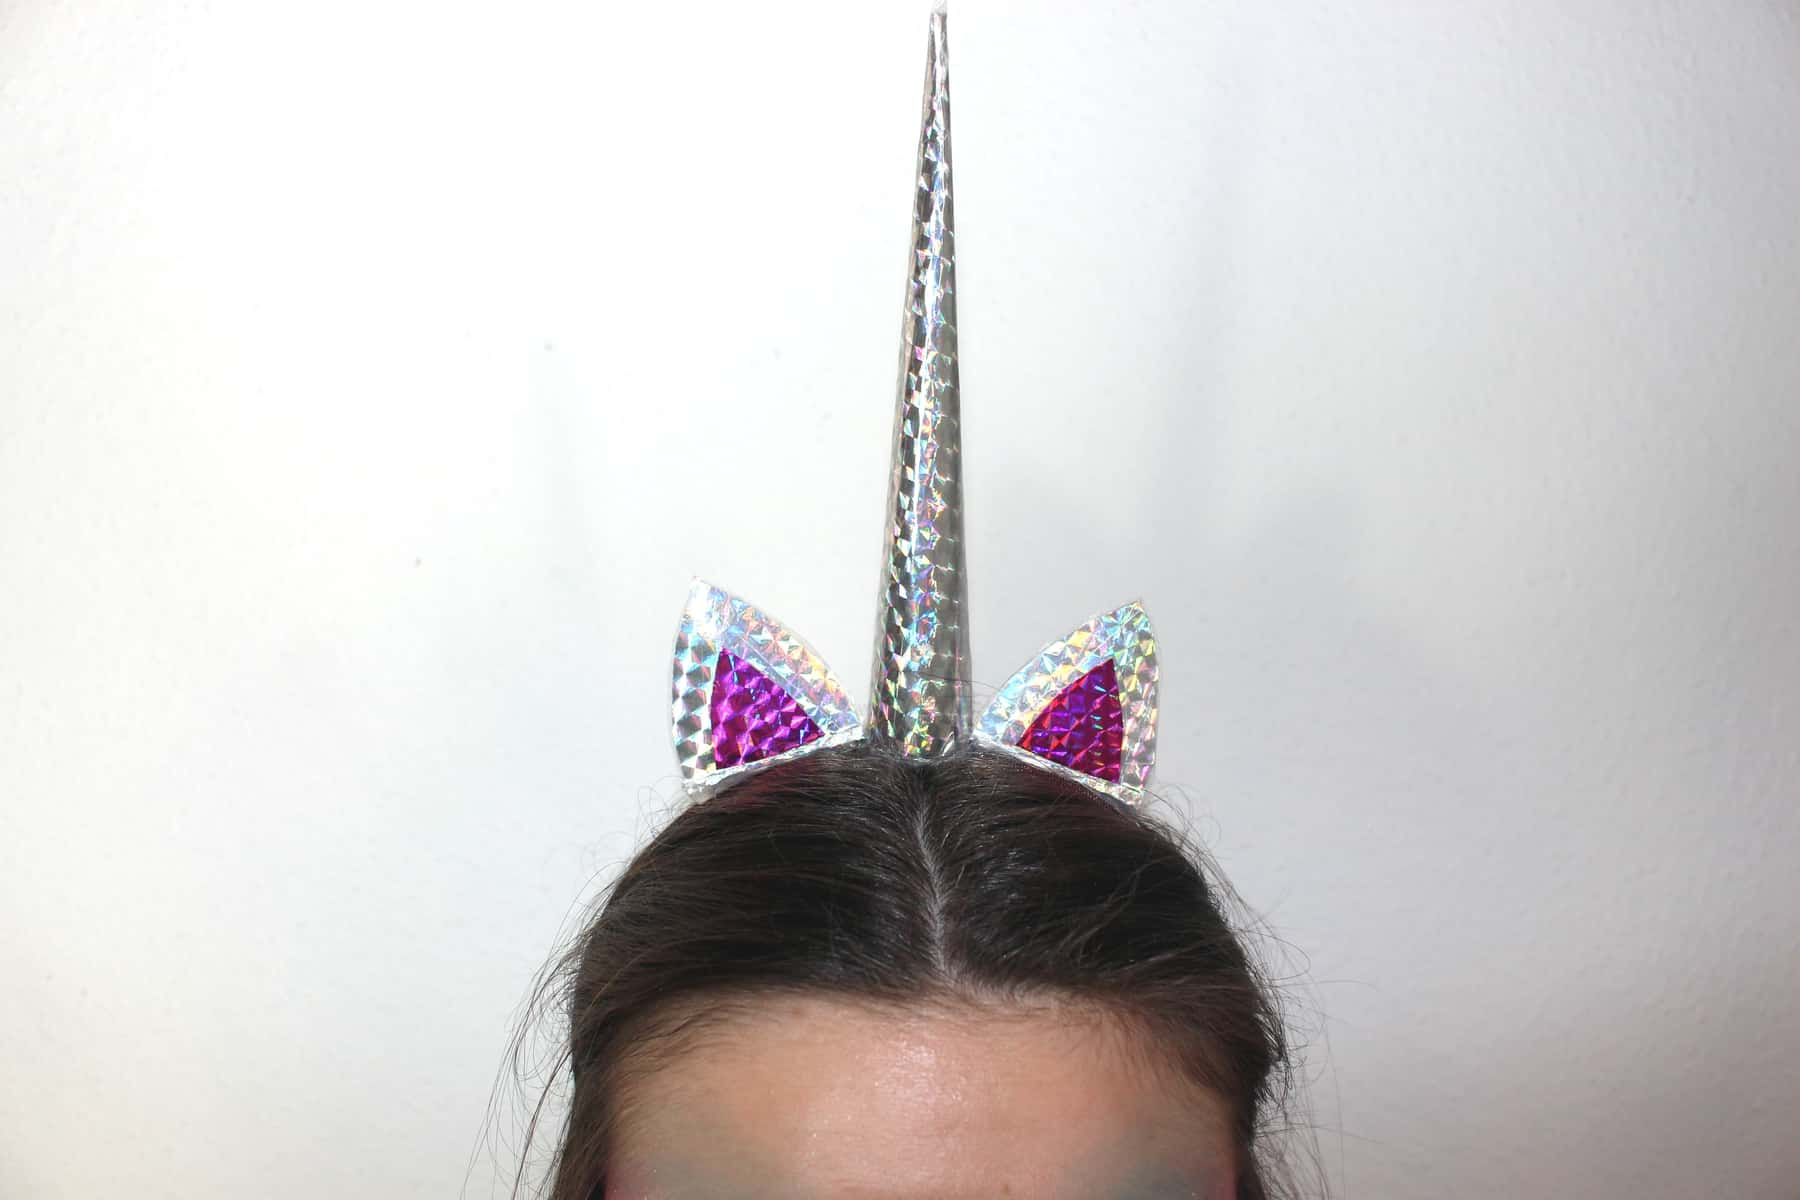 Dress up as a Unicorn